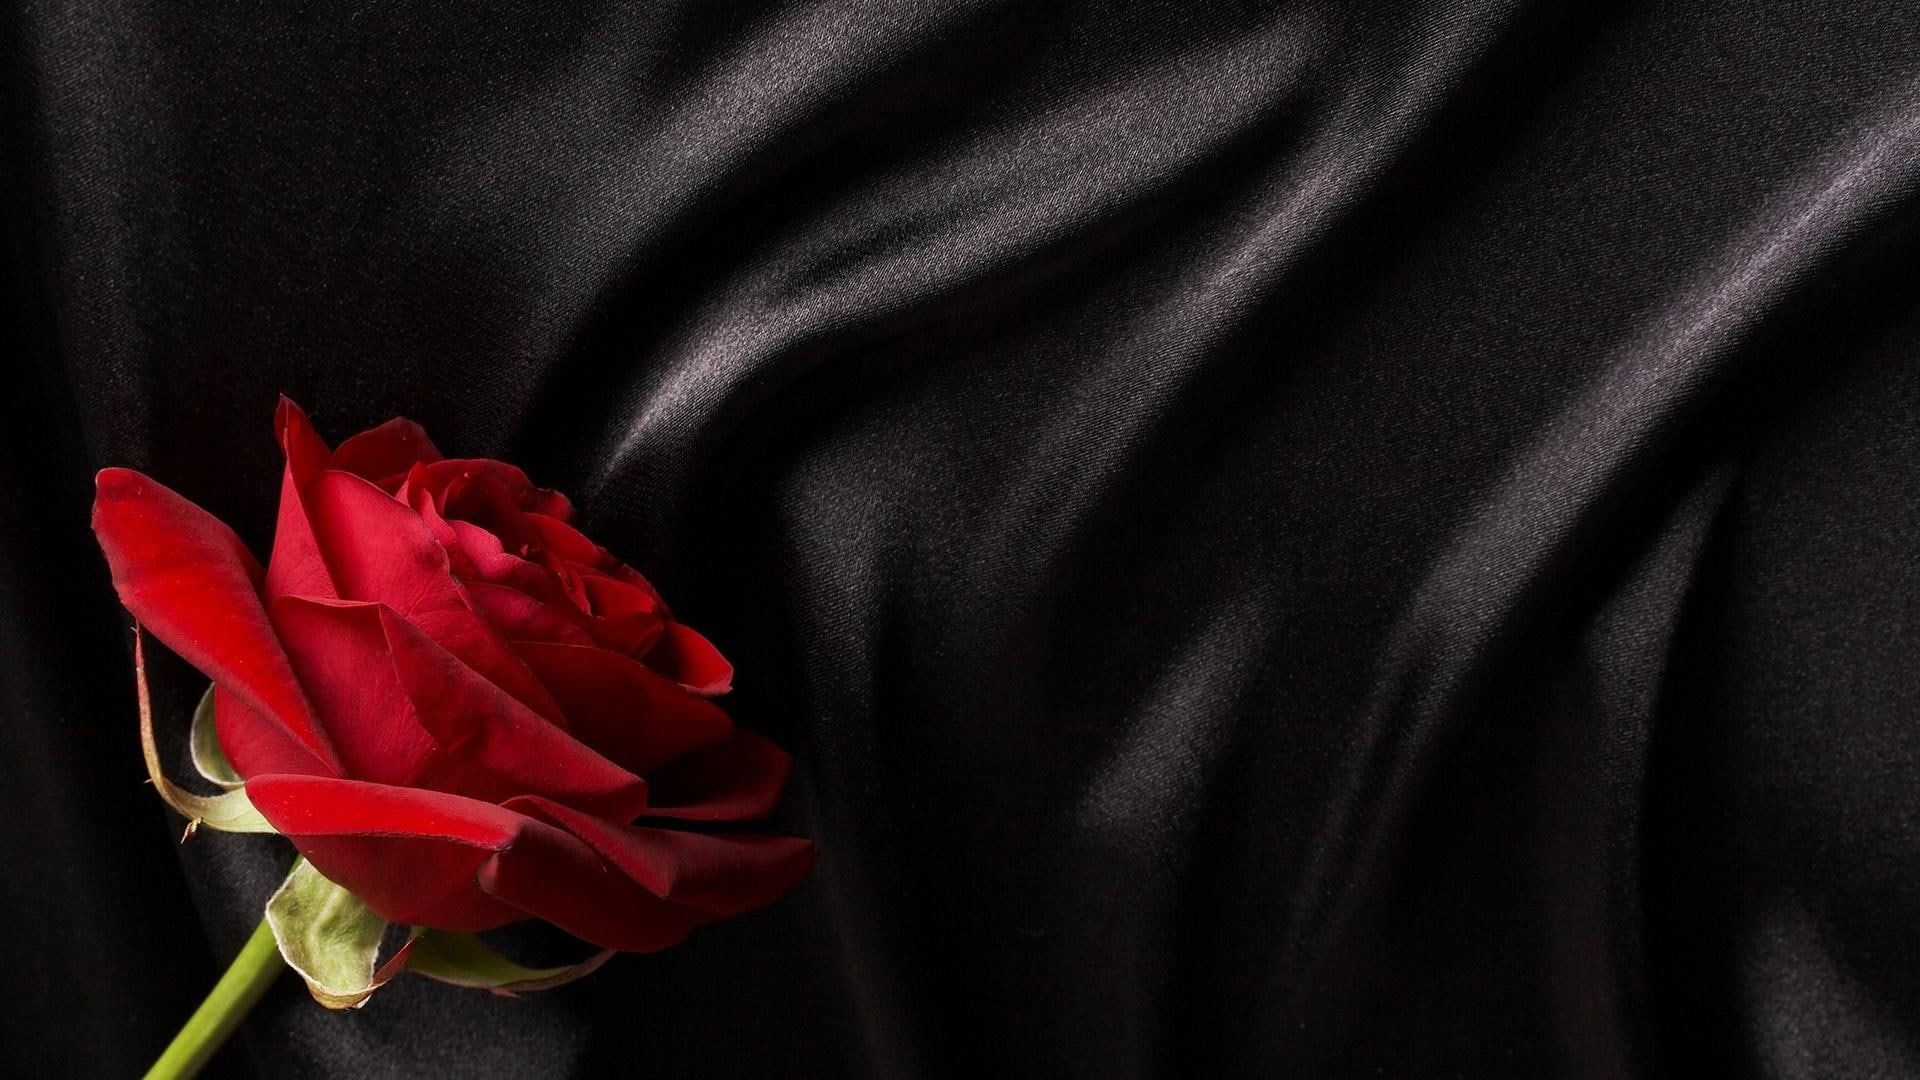 Pin By Cammi Cook On Gothic Gothic Wallpaper Rose Wallpaper Black Wallpaper